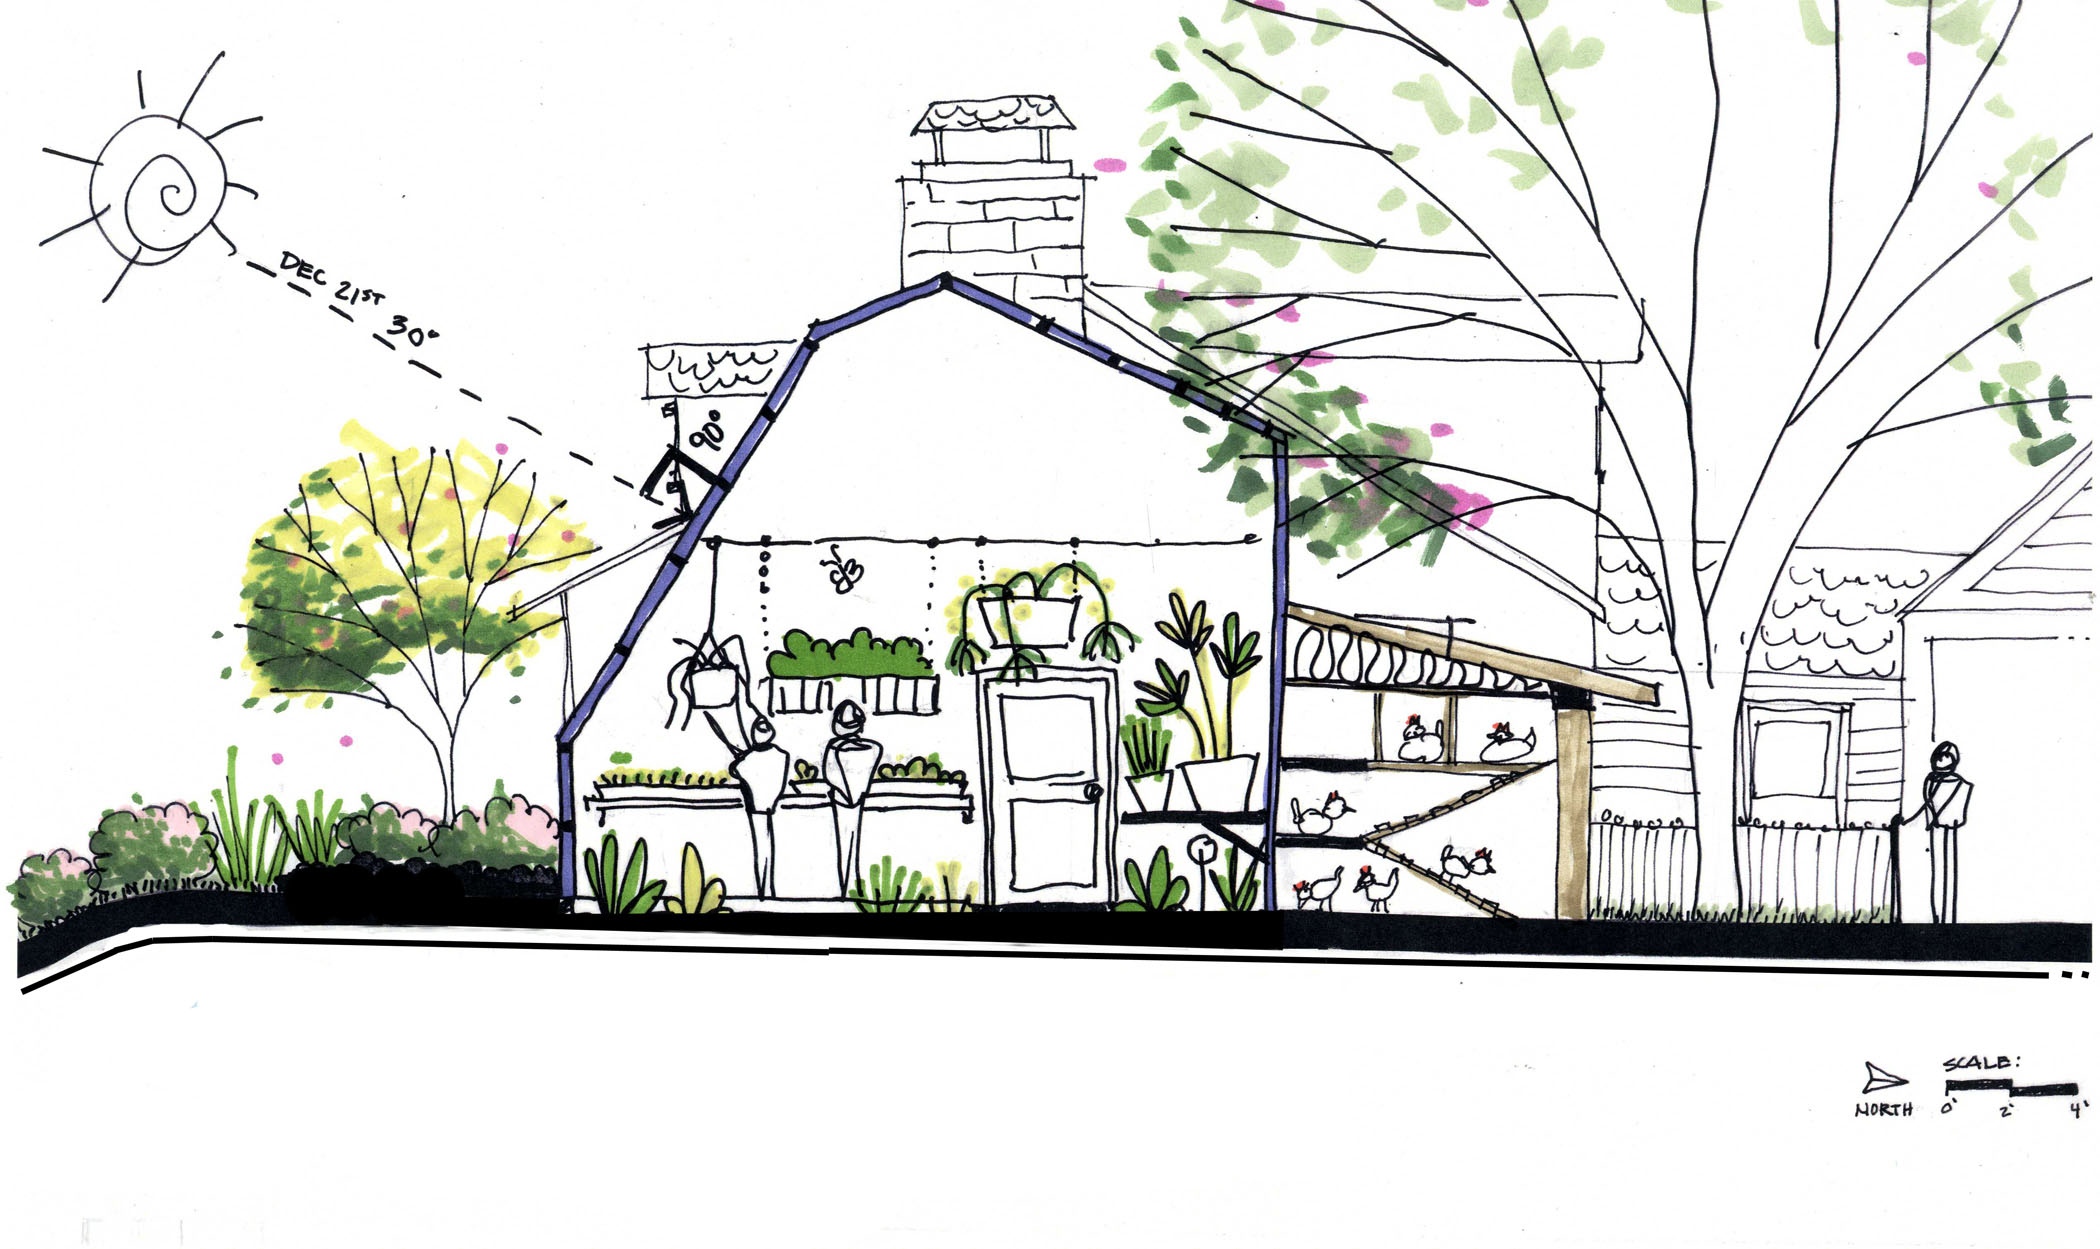 greenhouse chicken house combo - Chicken Co Op Plans And Greenhouse